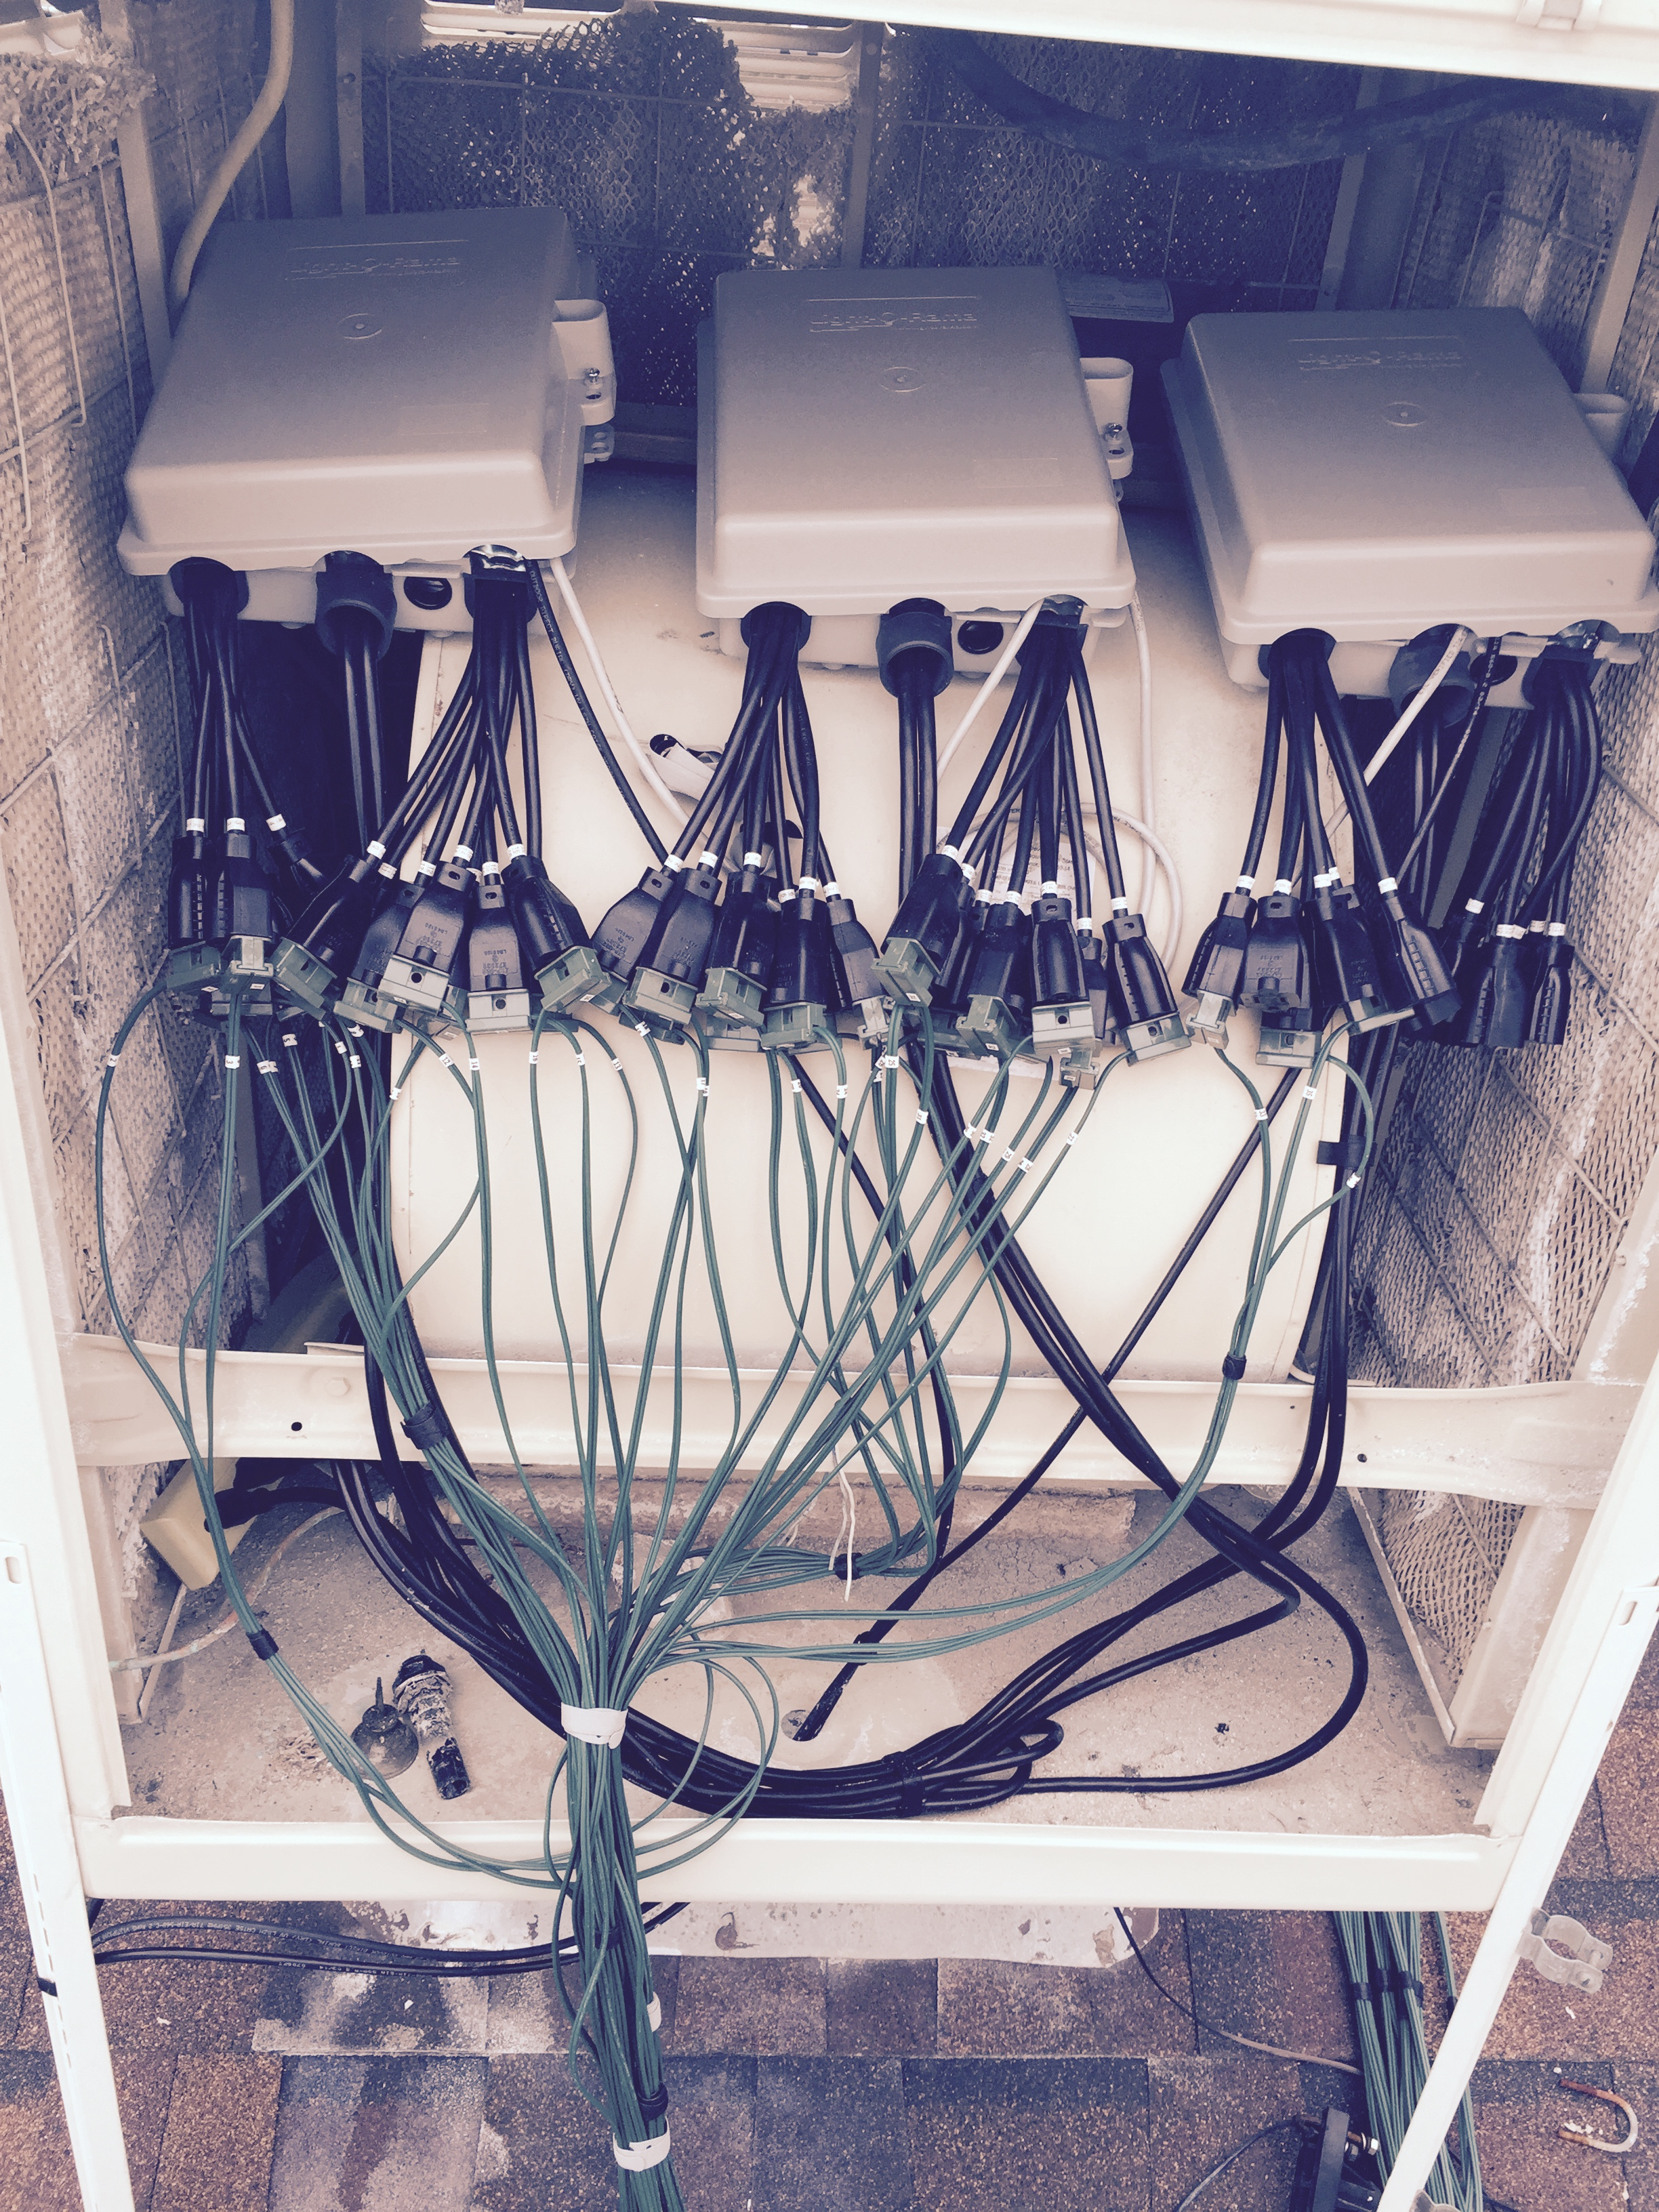 111b Wires to Swamp Cooler